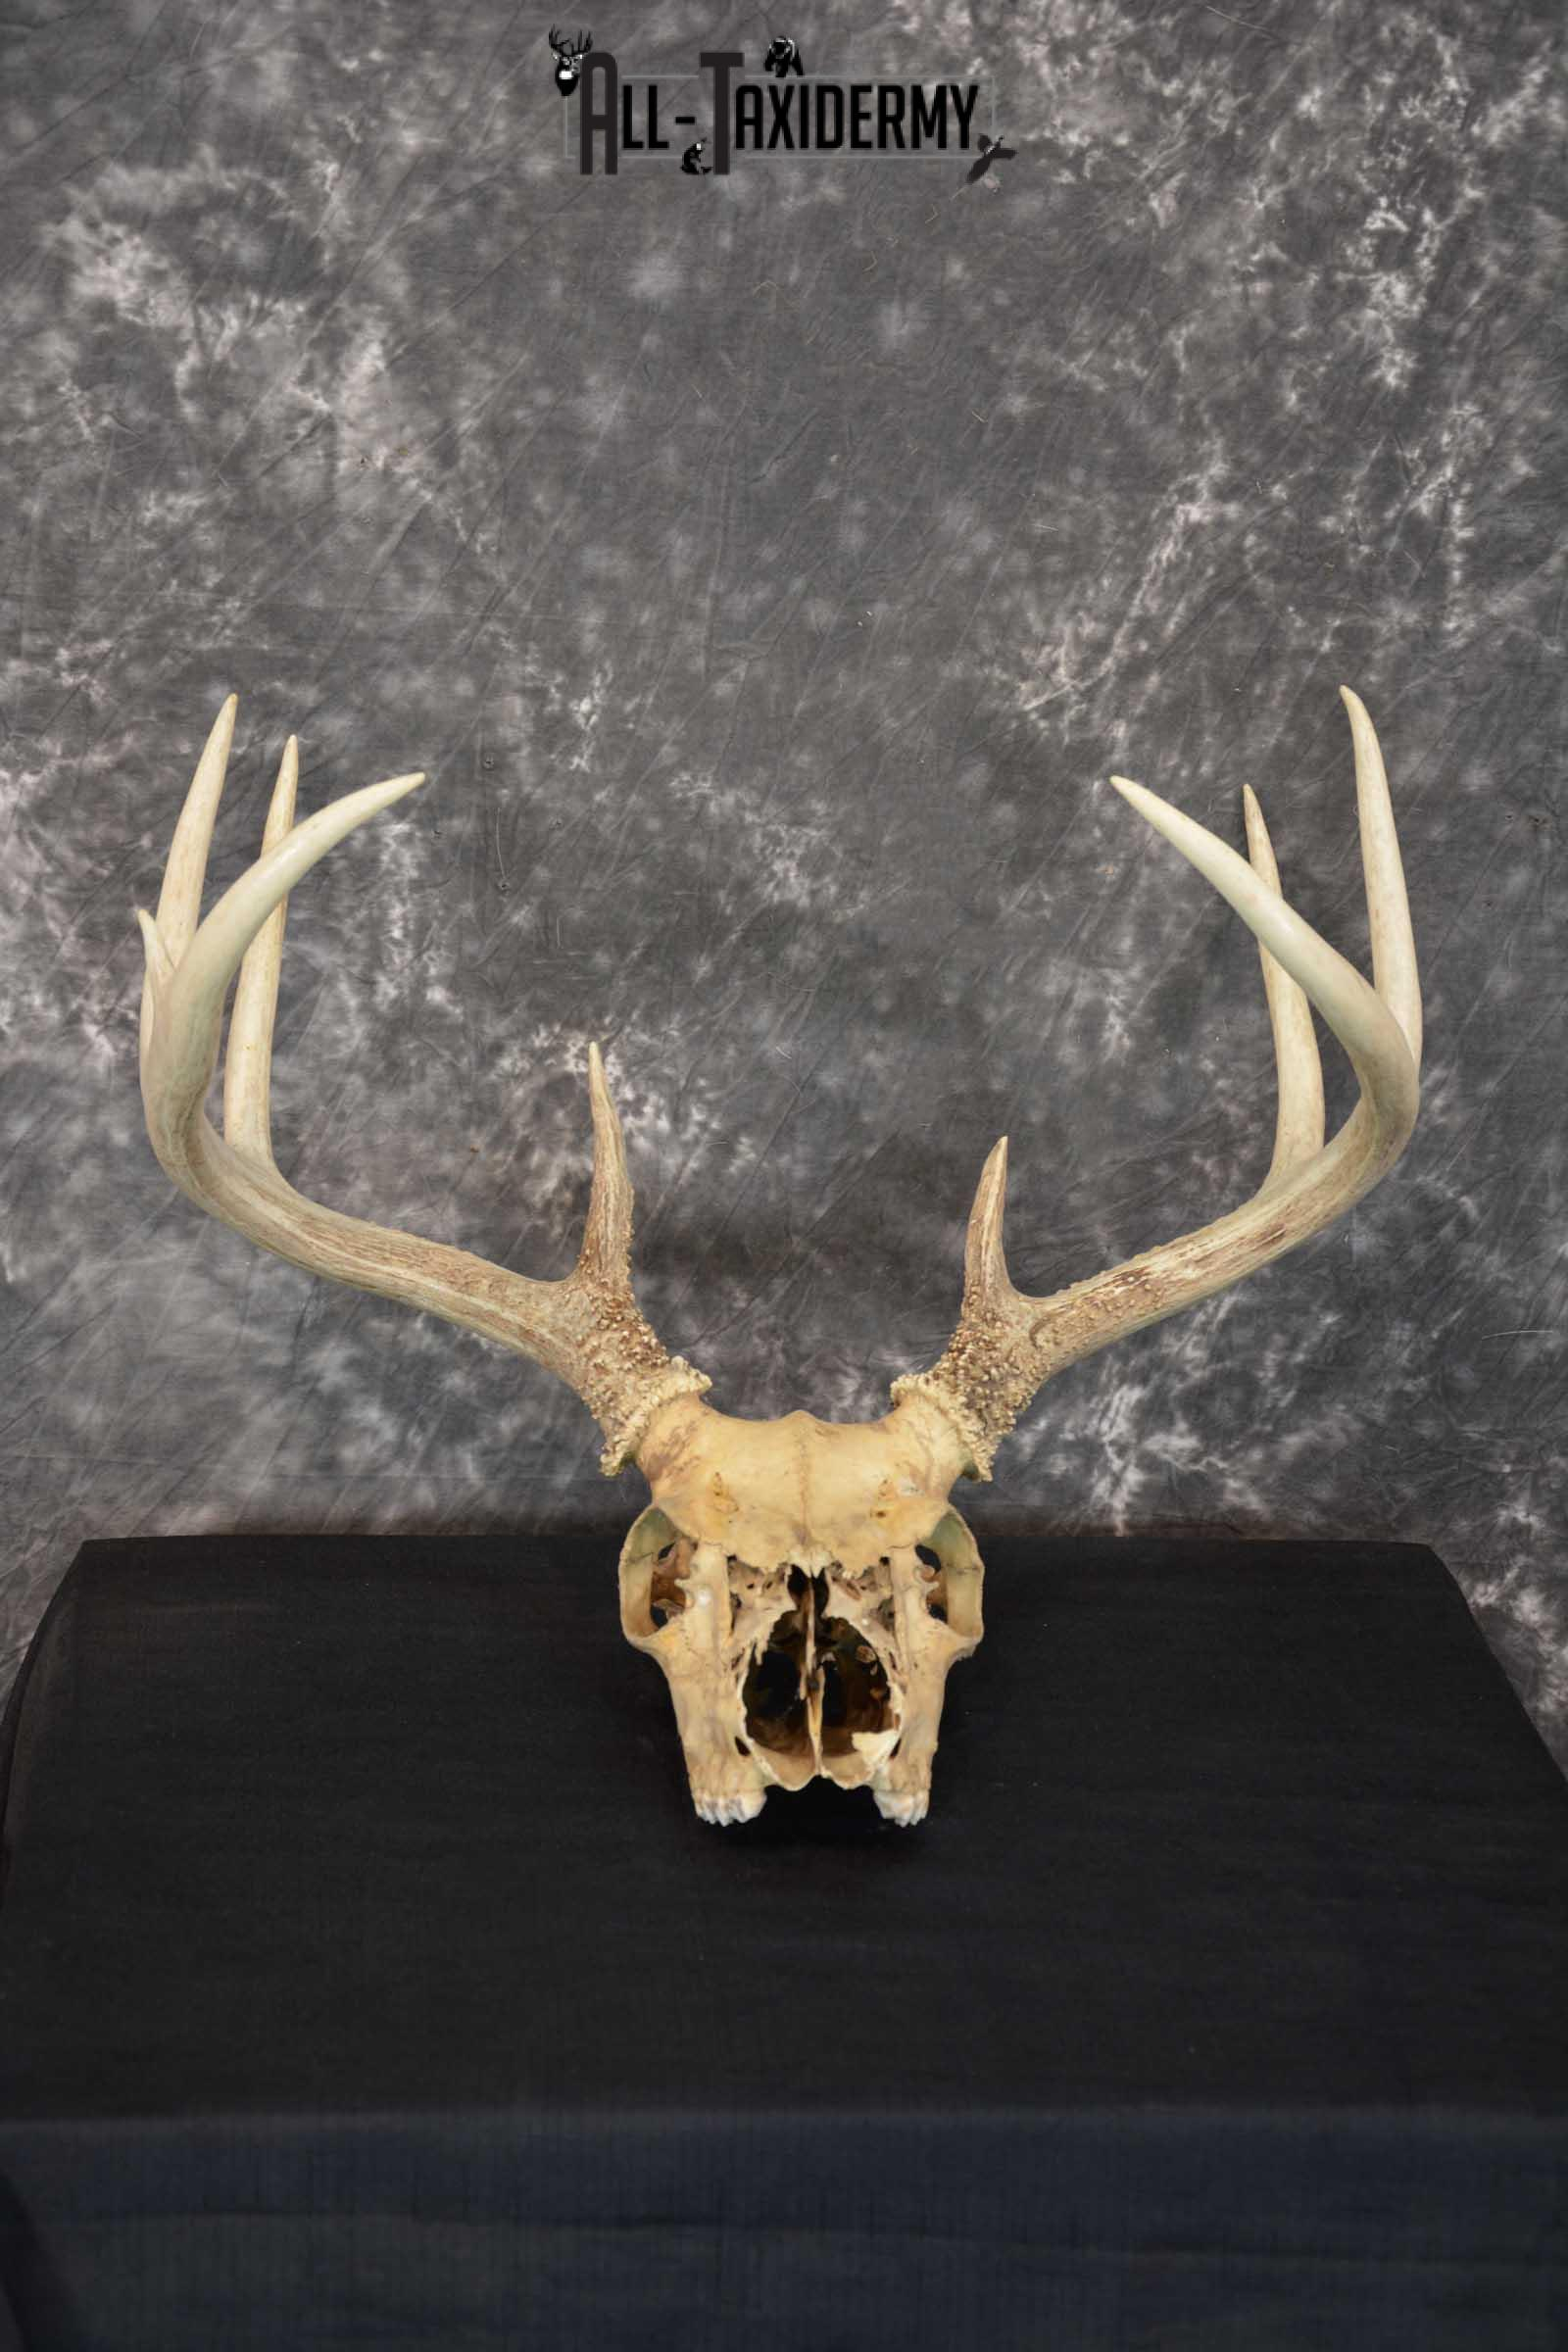 Whitetail Taxidermy Skull SKU 1555.8